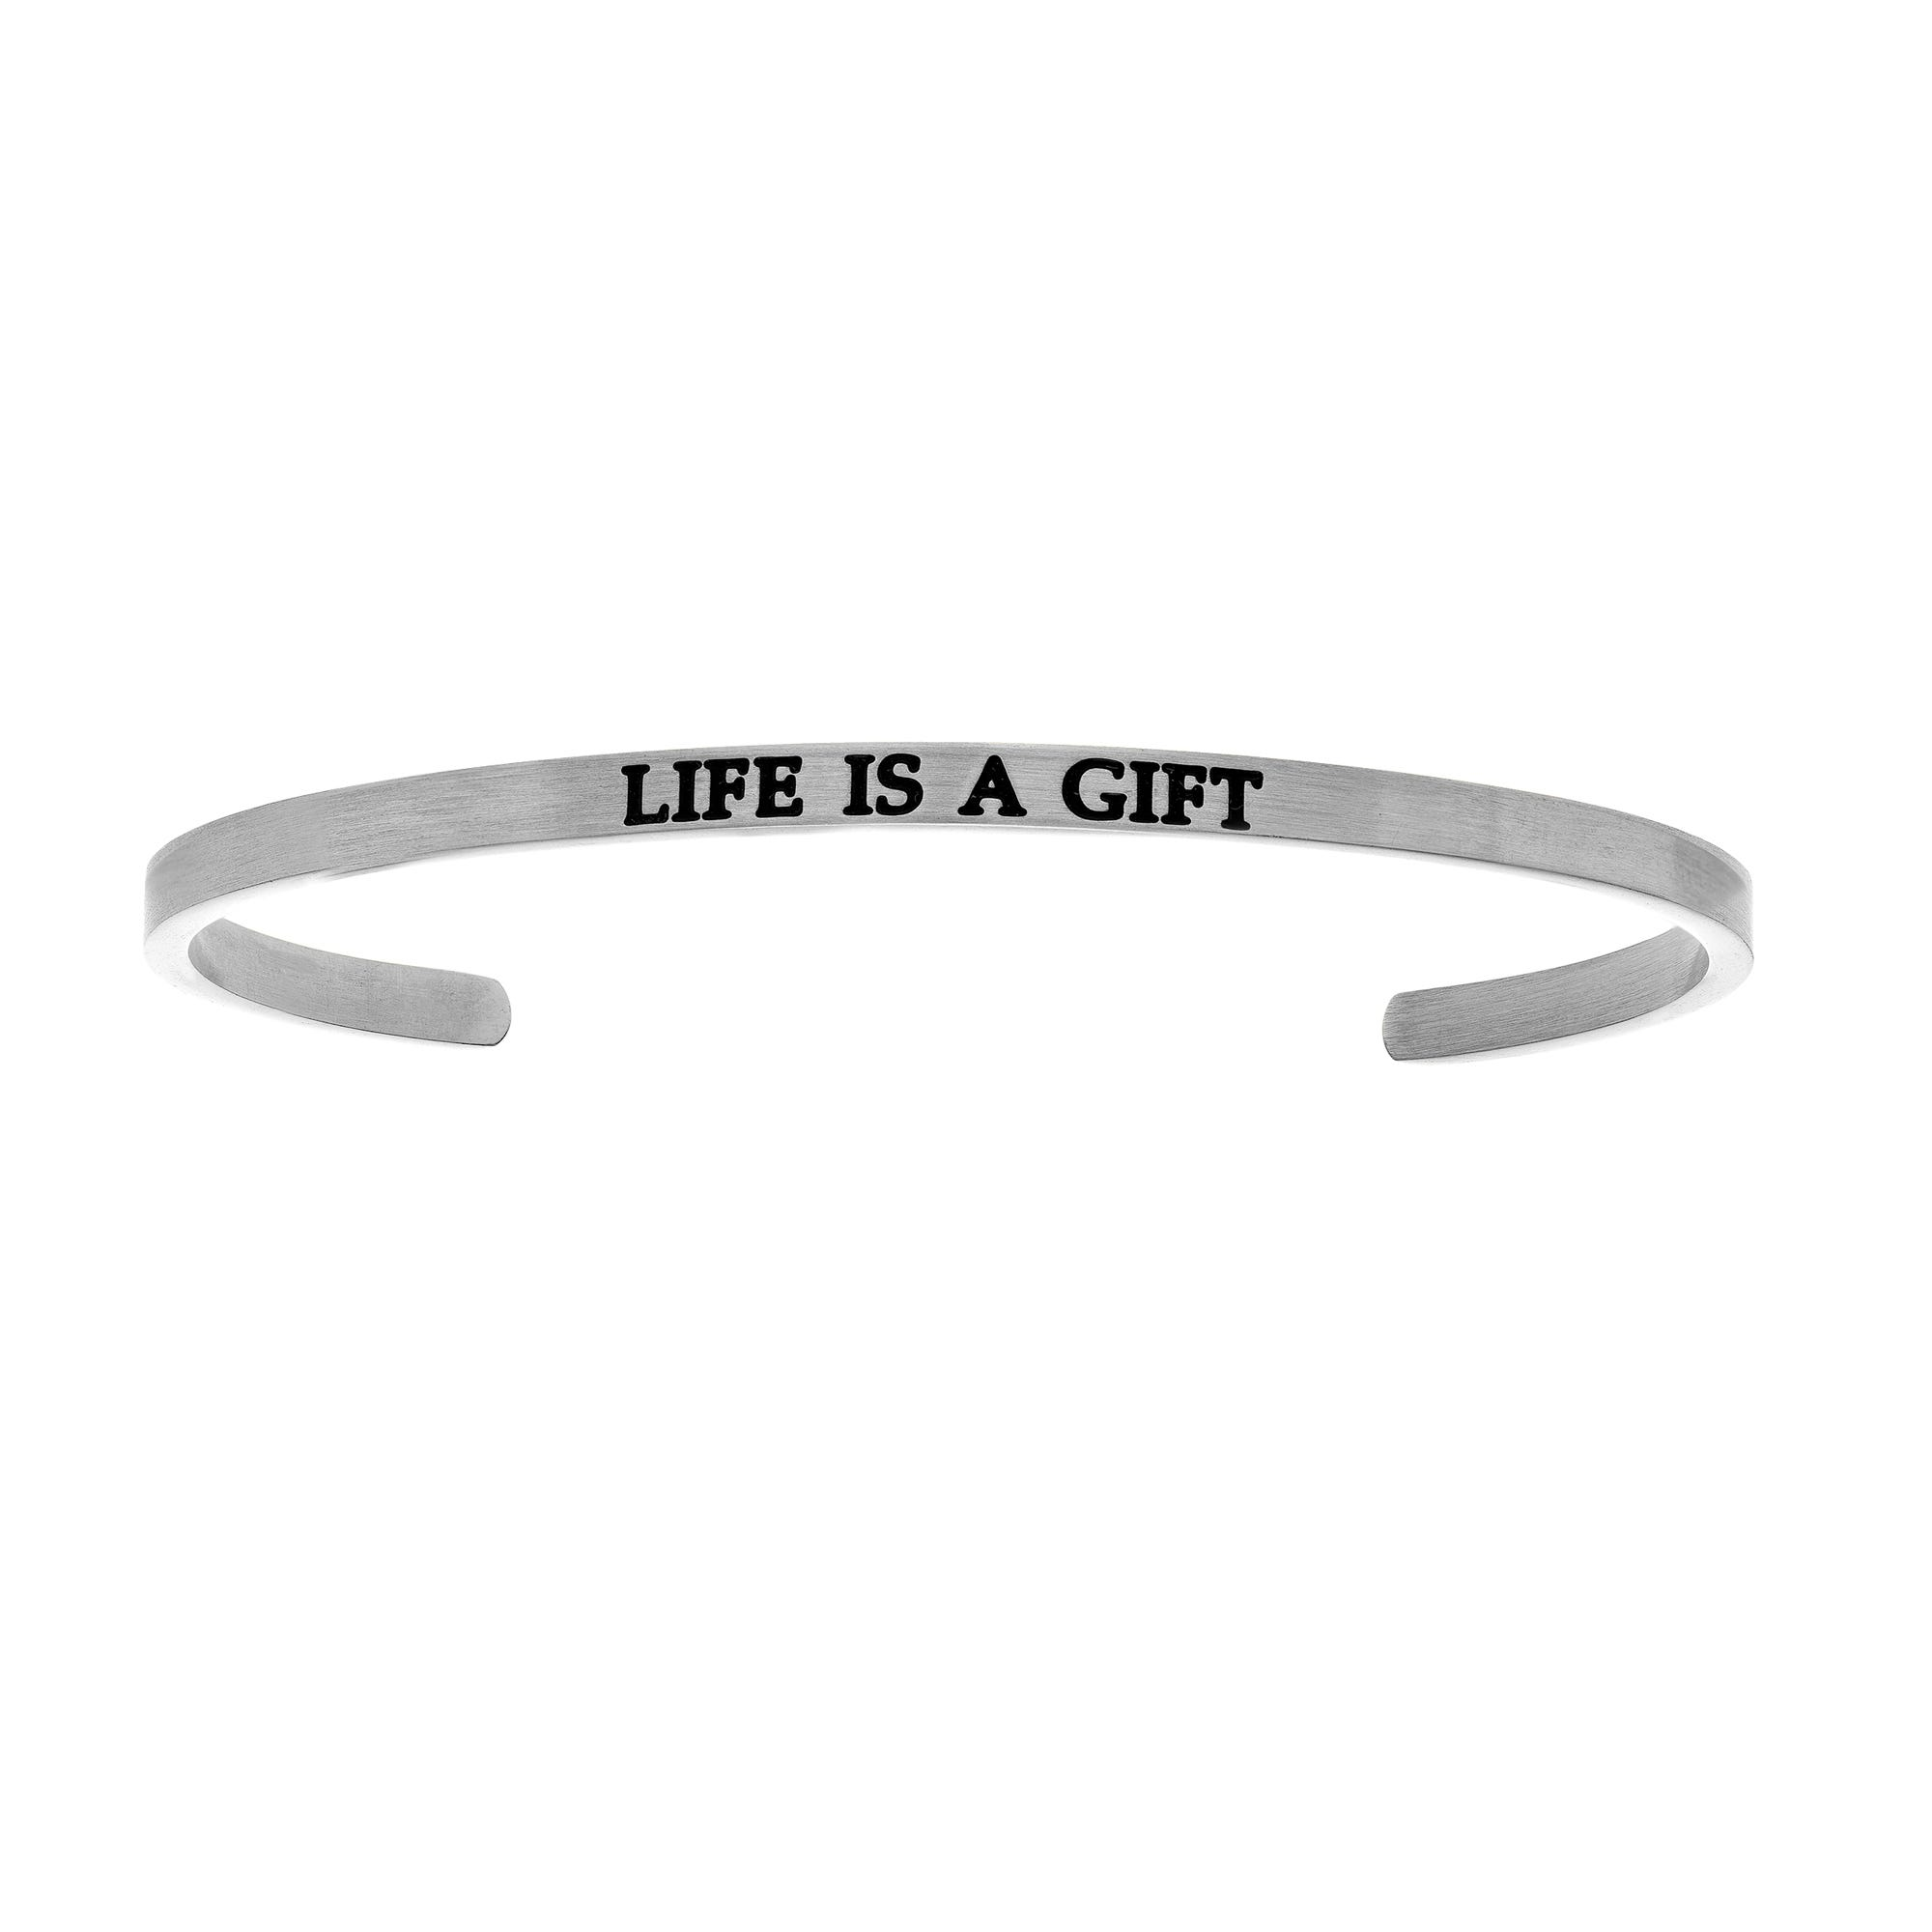 Life Is A Gift. Intuitions Cuff Bracelet in White Stainless Steel